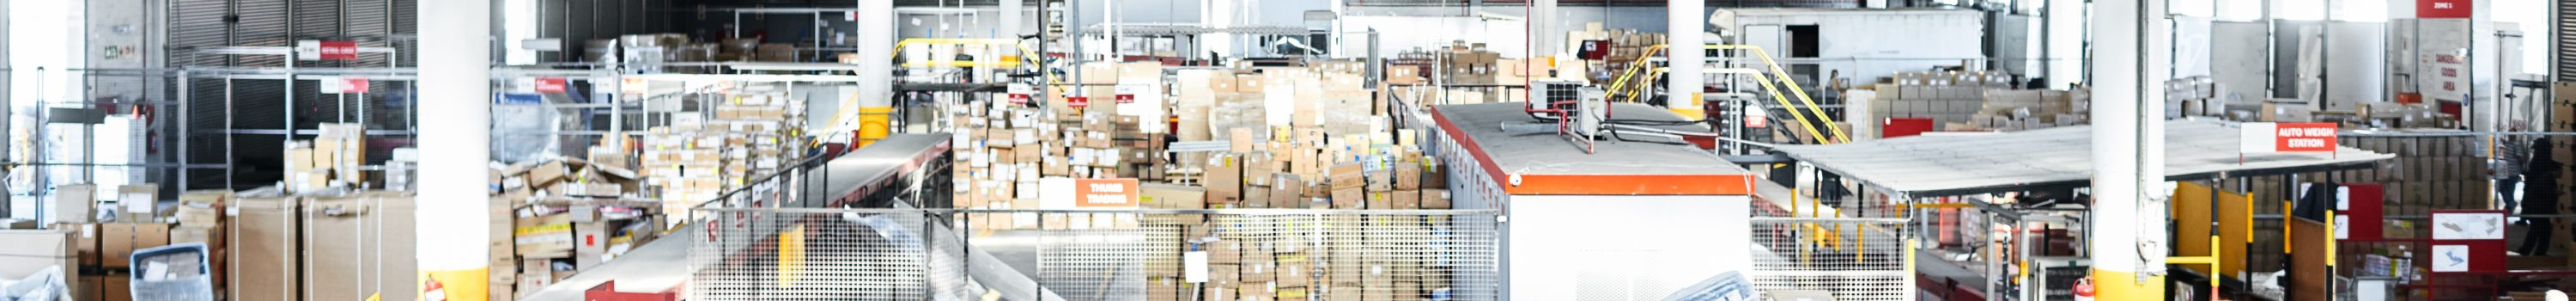 Shot of a large distribution warehouse full of boxes and containers